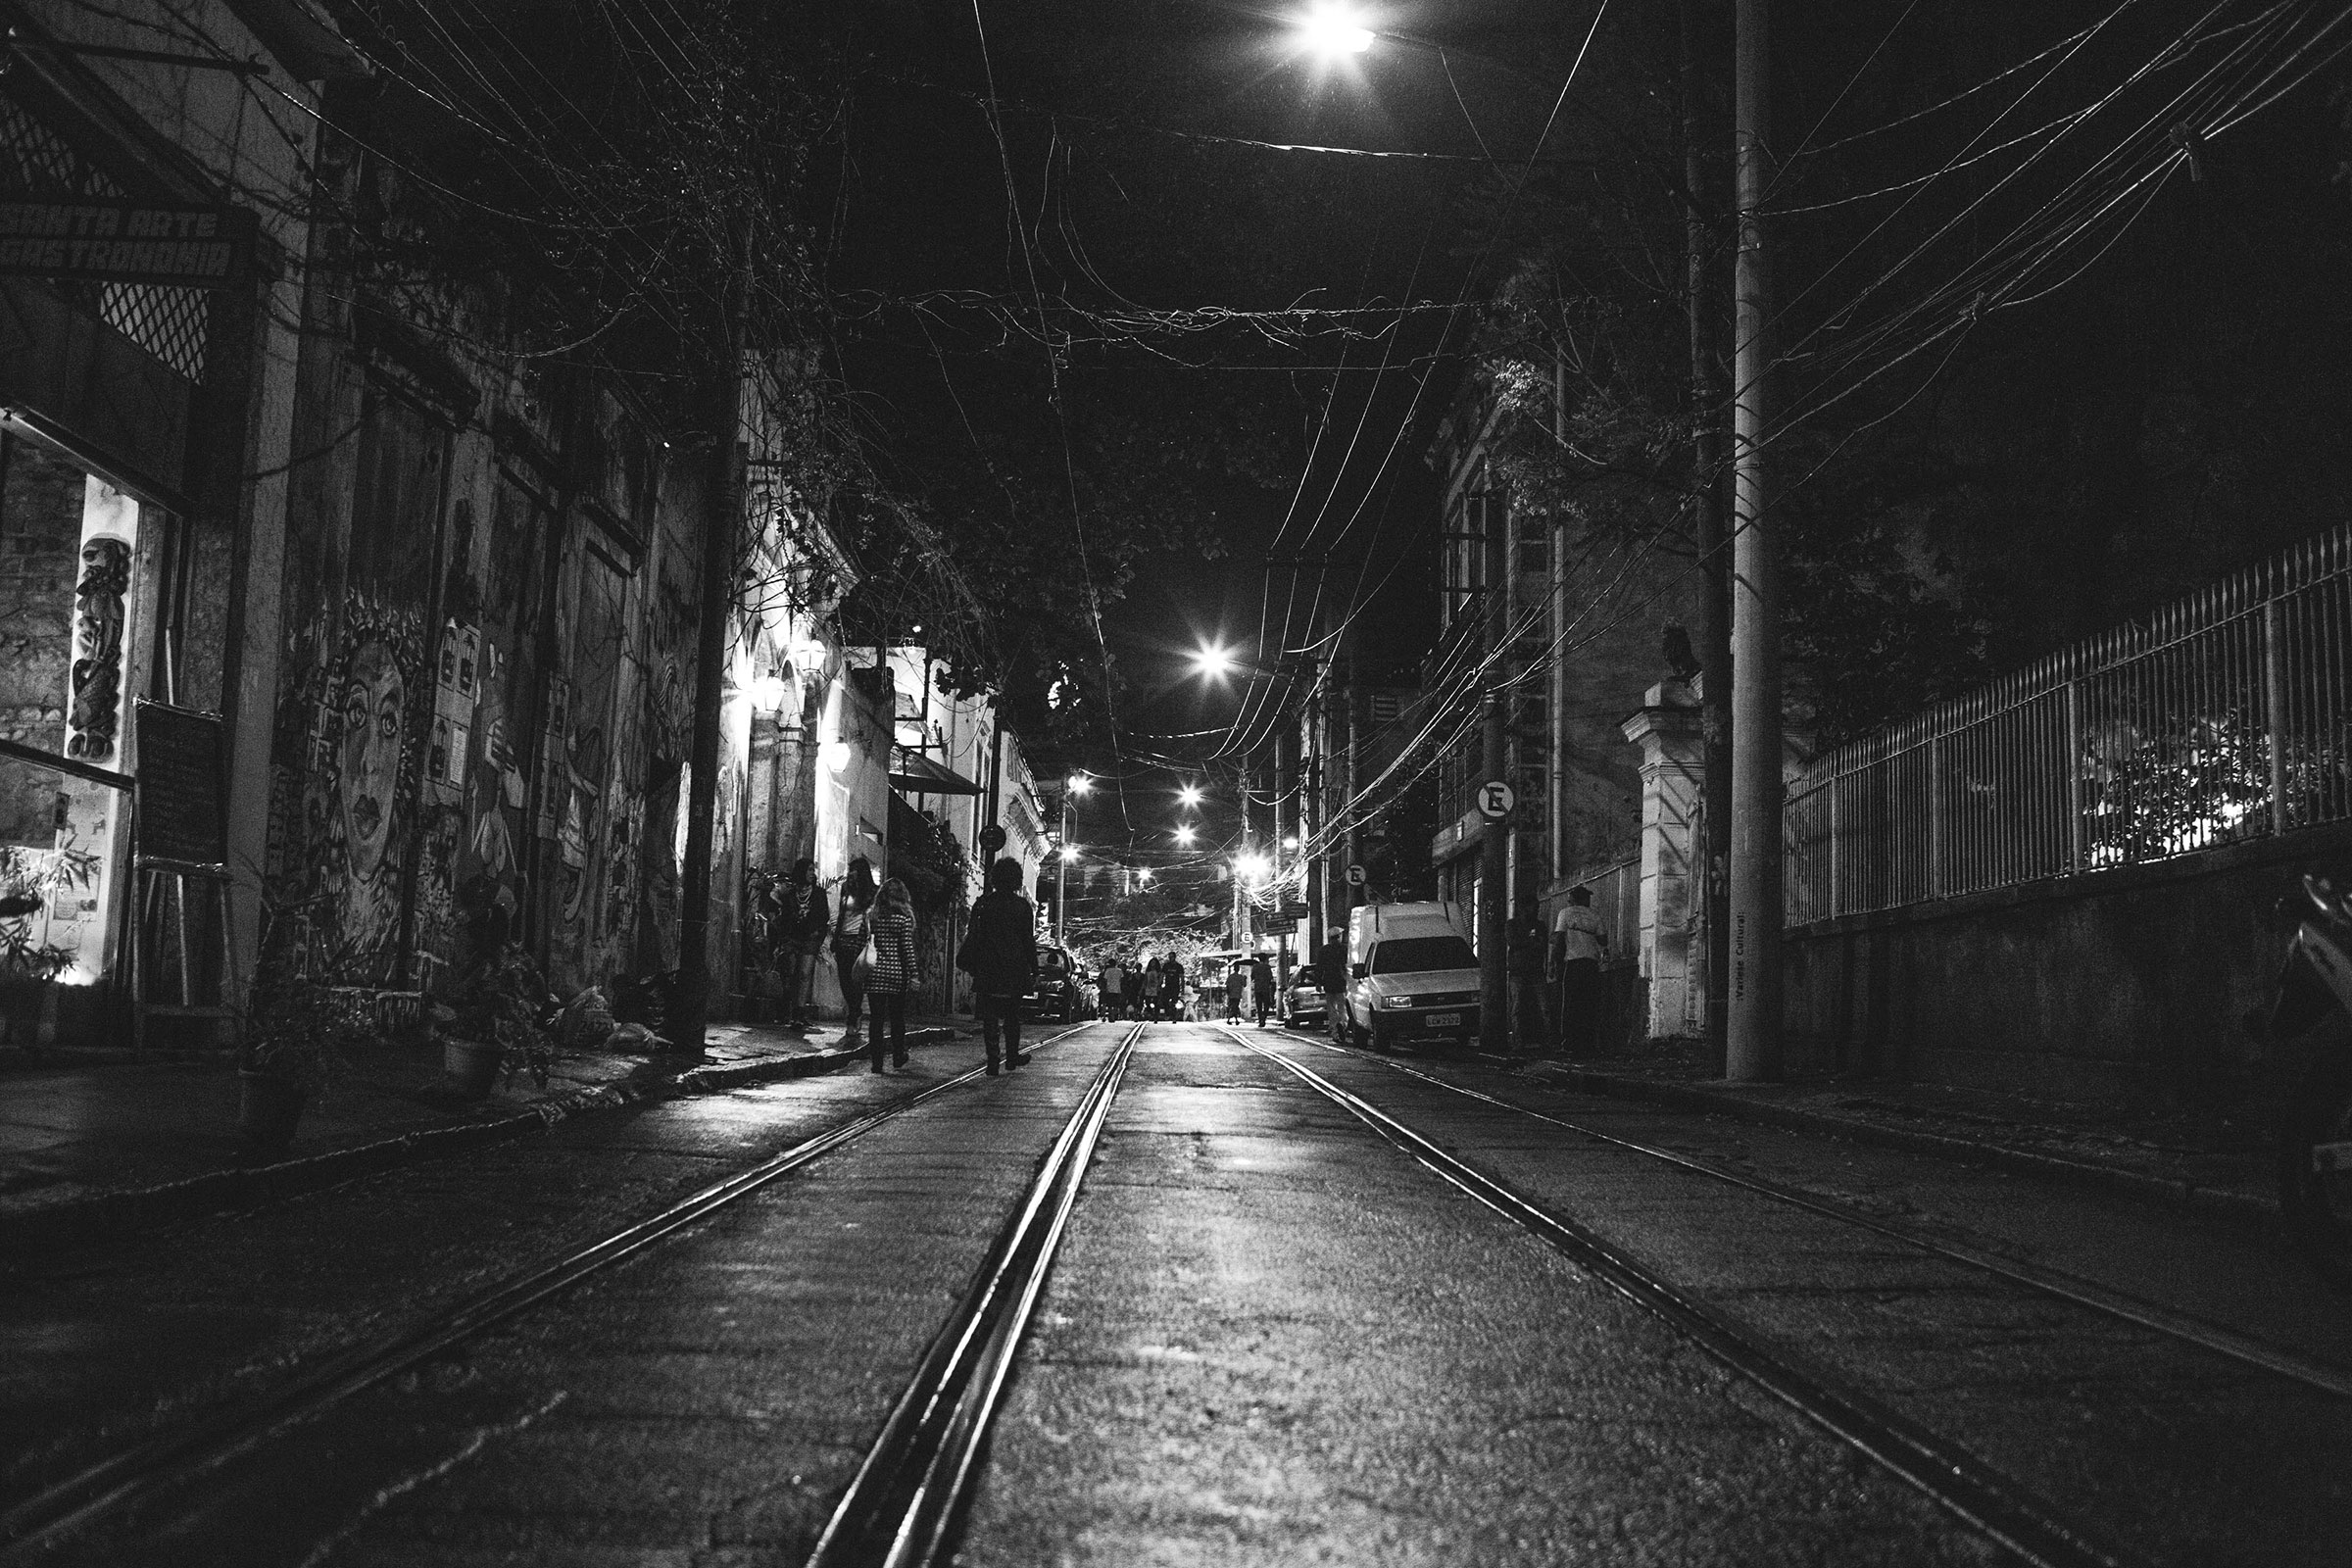 Rio trip:A view of a deserted street with tram tracks and grafitti on the walls, Rio De Janeiro